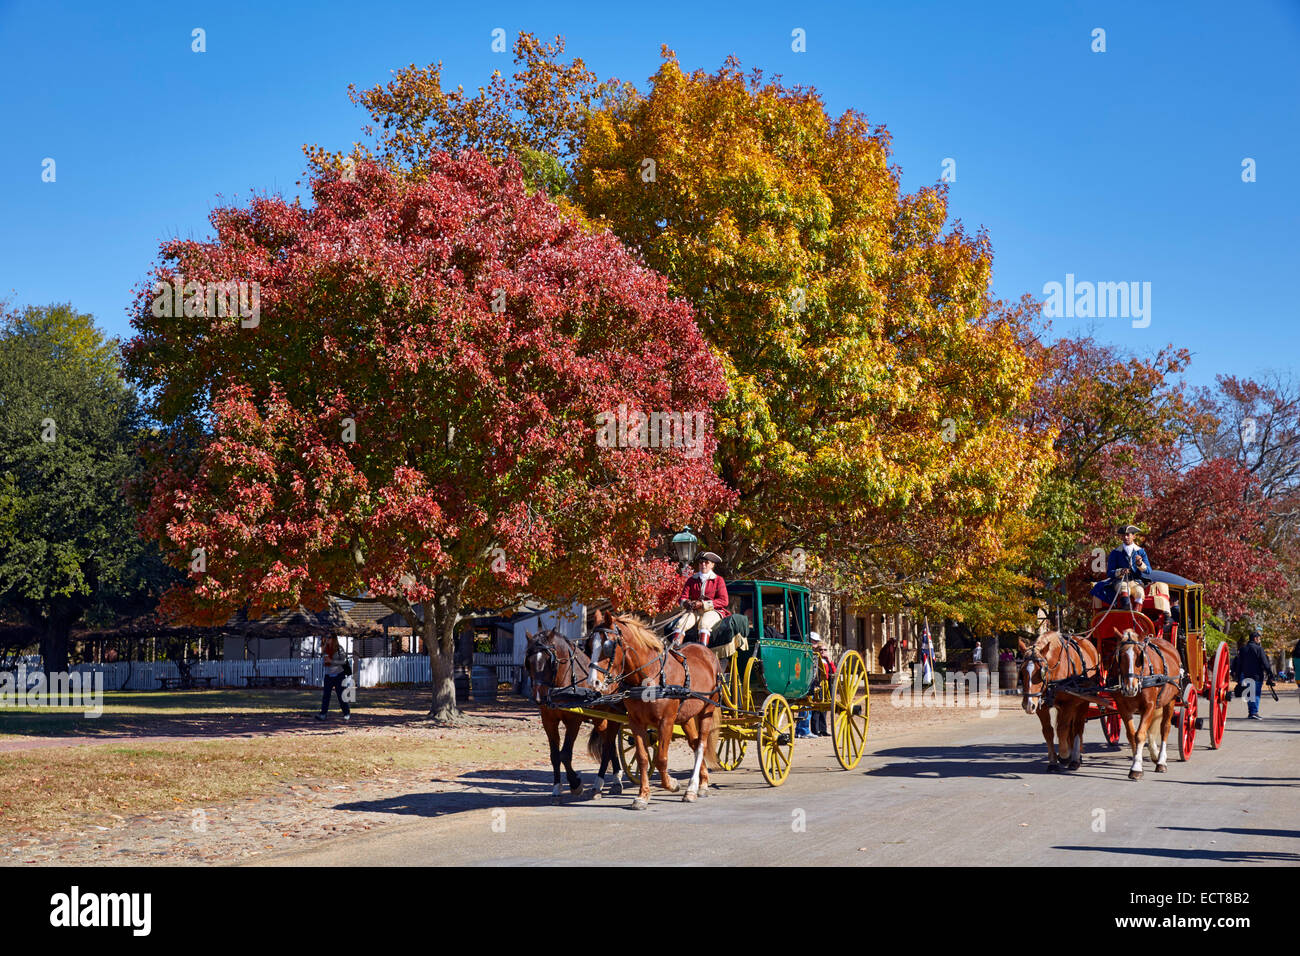 Horse drawn carriages on Duke of Gloucester Street. Colonial Williamsburg, Virginia, USA. - Stock Image